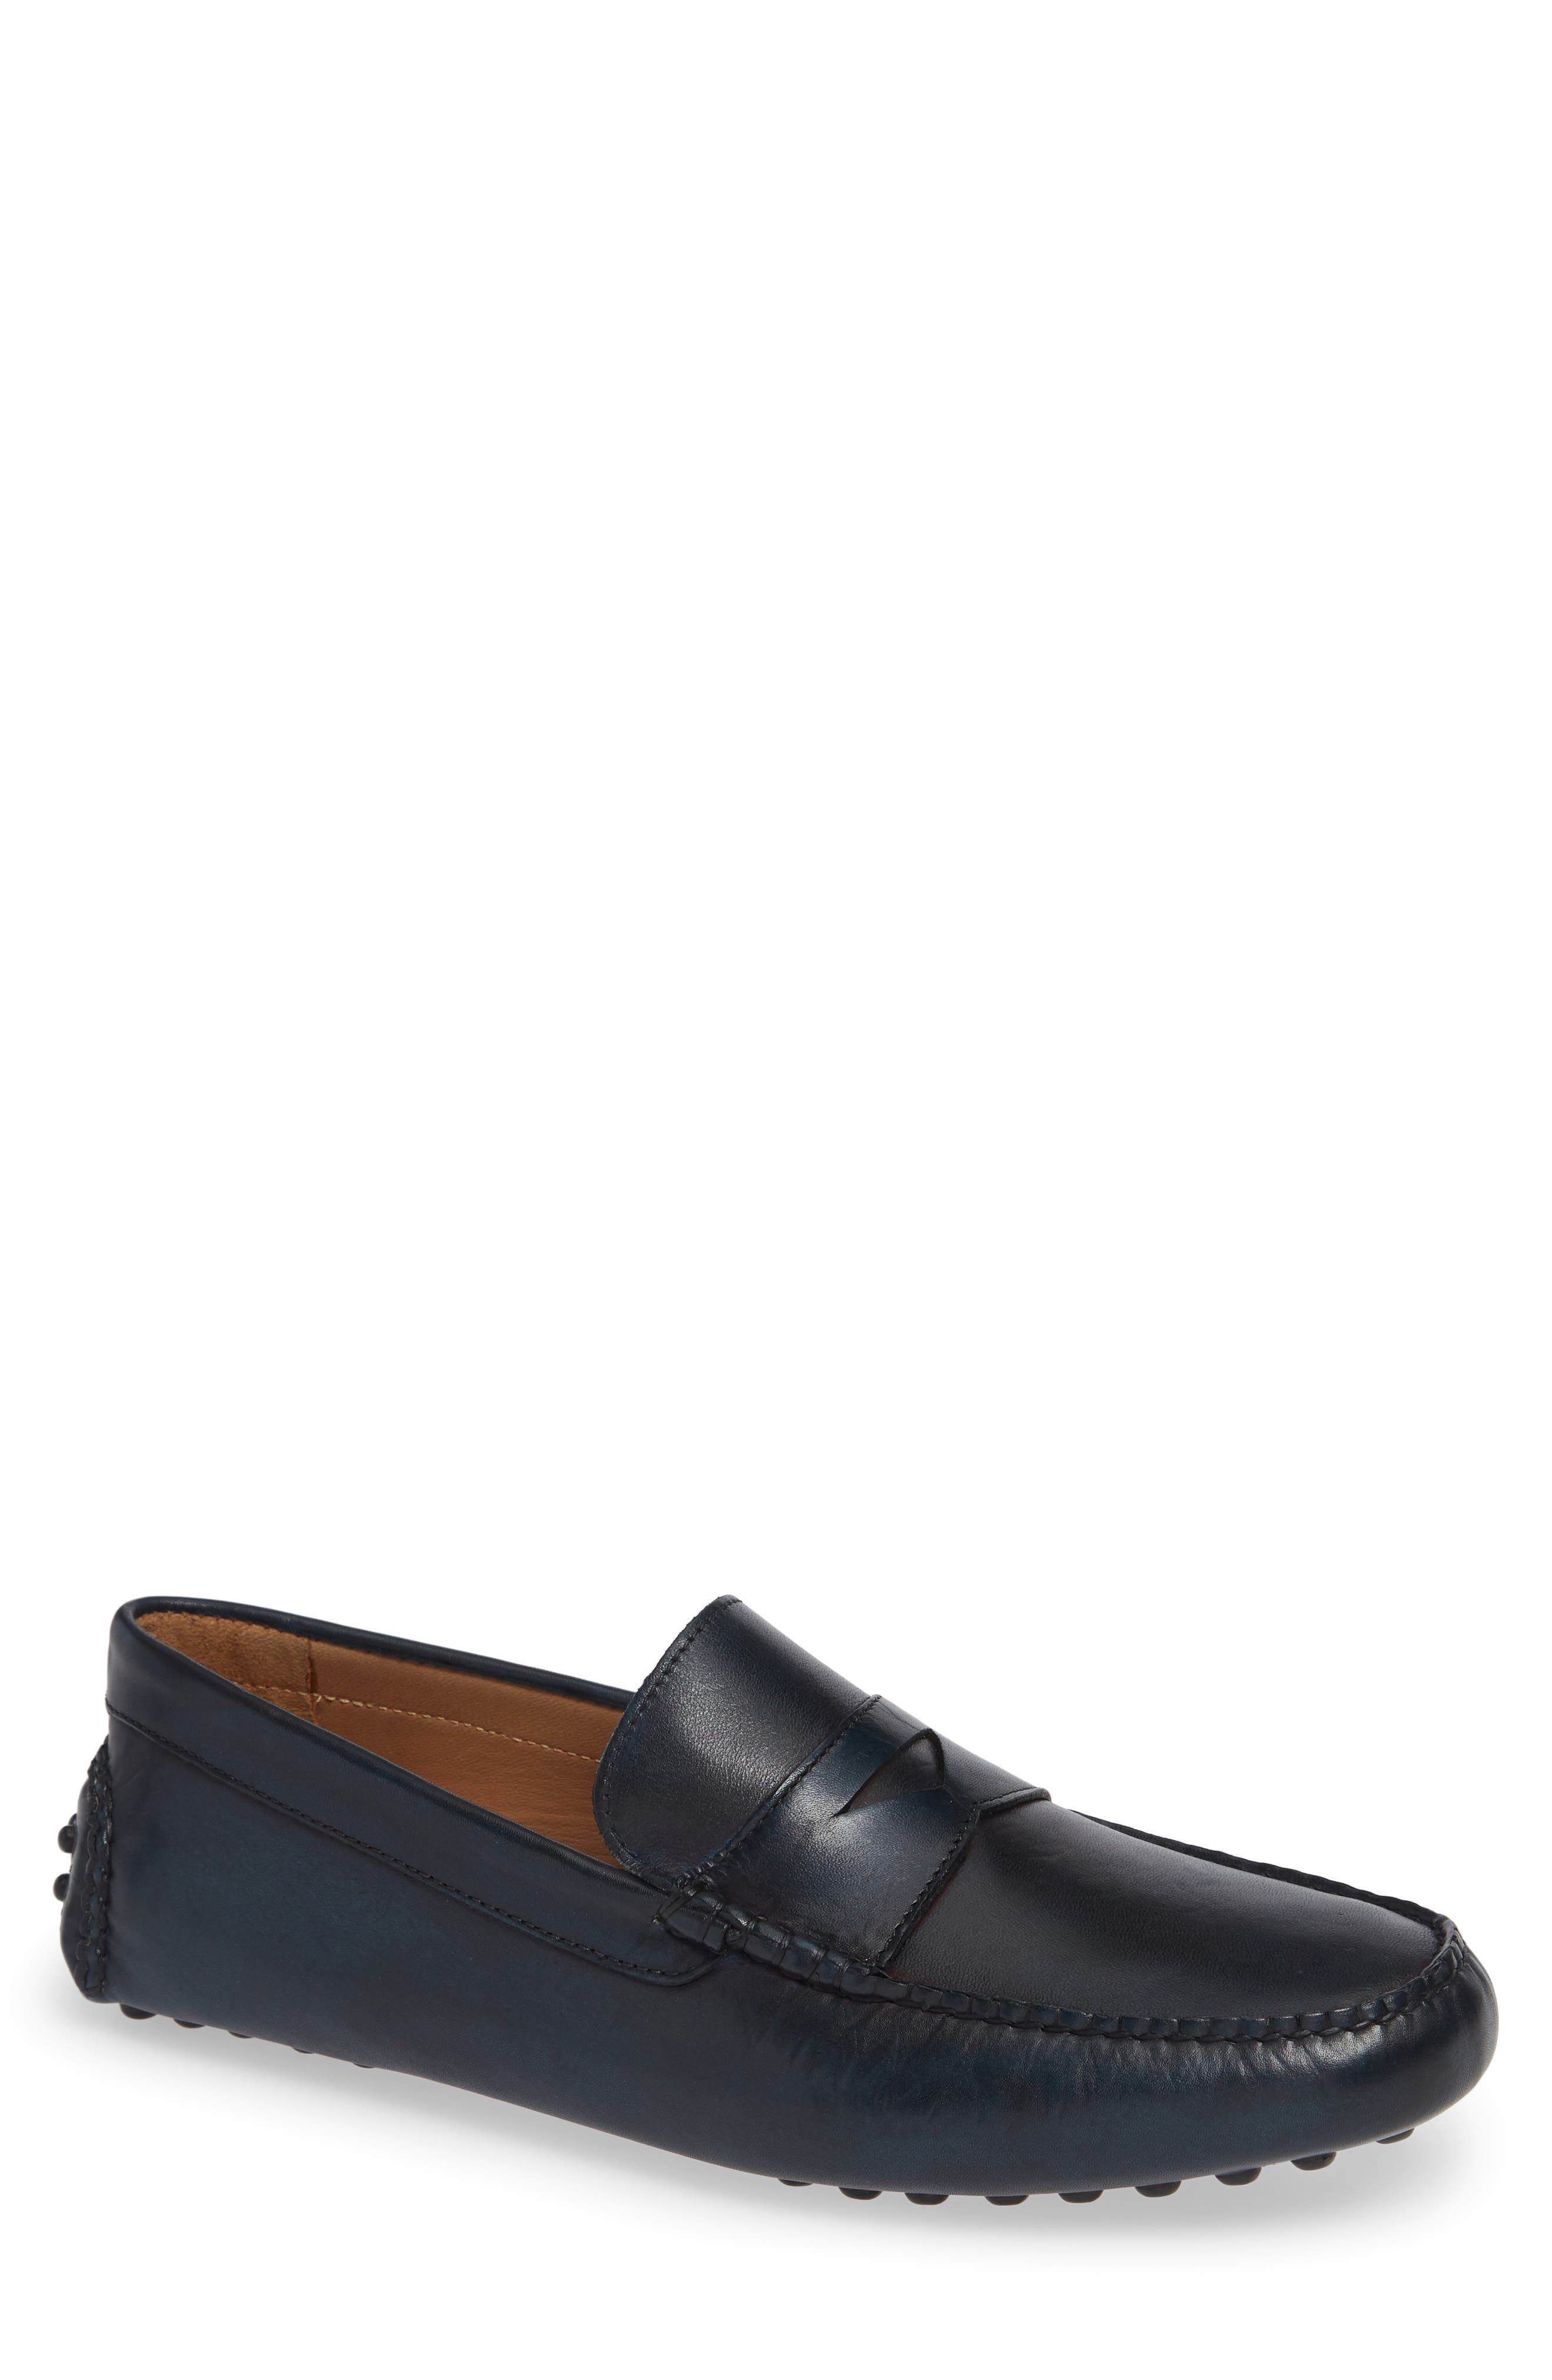 Eaton Driving Shoe,                         Main,                         color, NAVY LEATHER